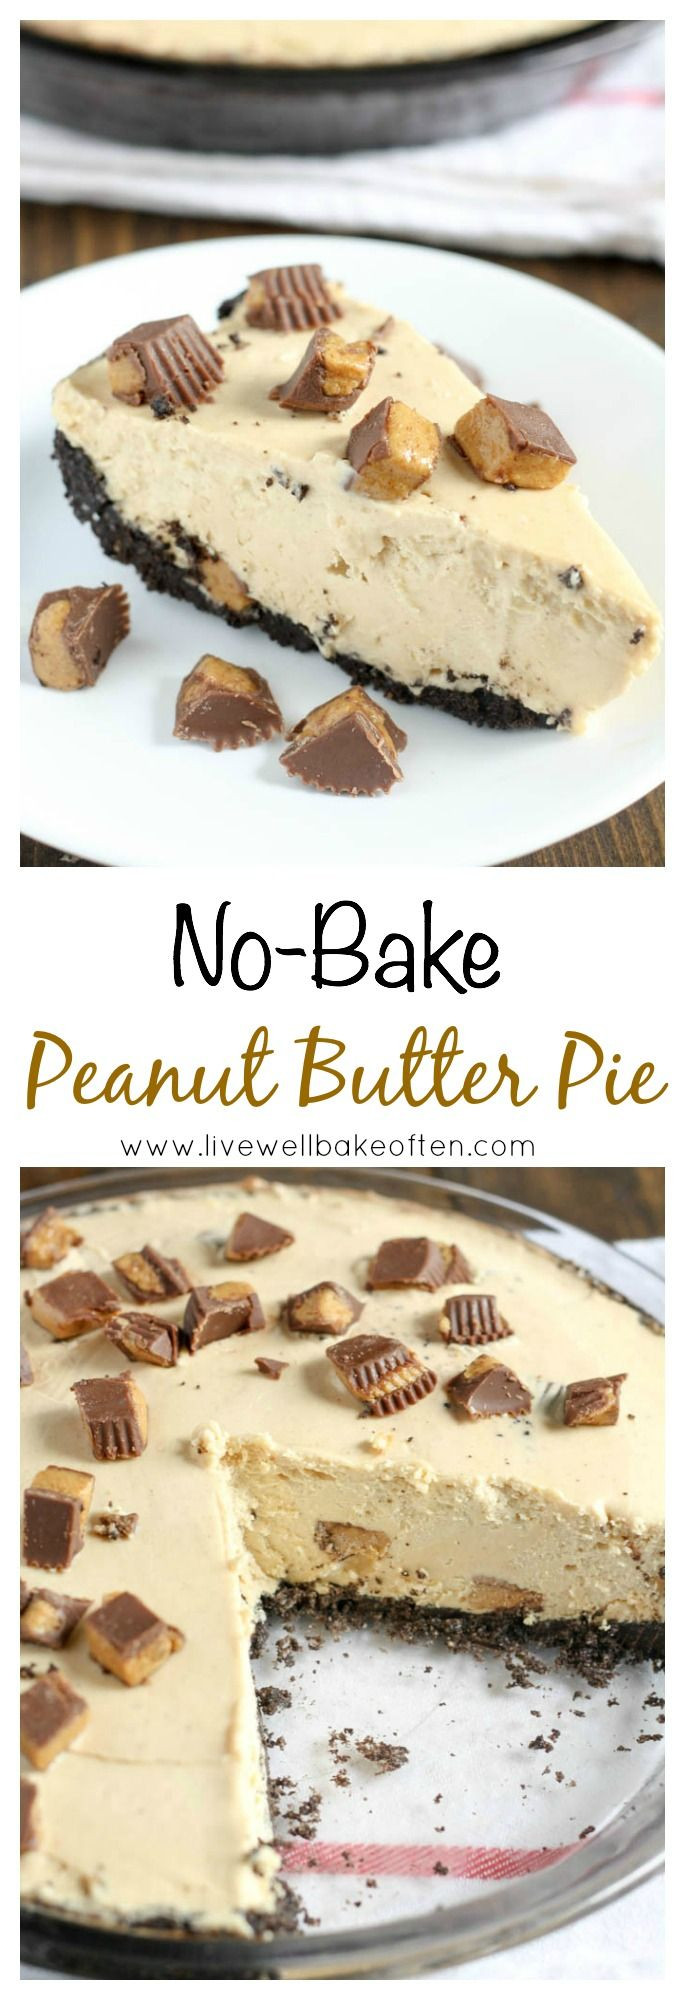 Peanut Butter Pie With Oreo Crust  An easy no bake peanut butter pie with a homemade Oreo